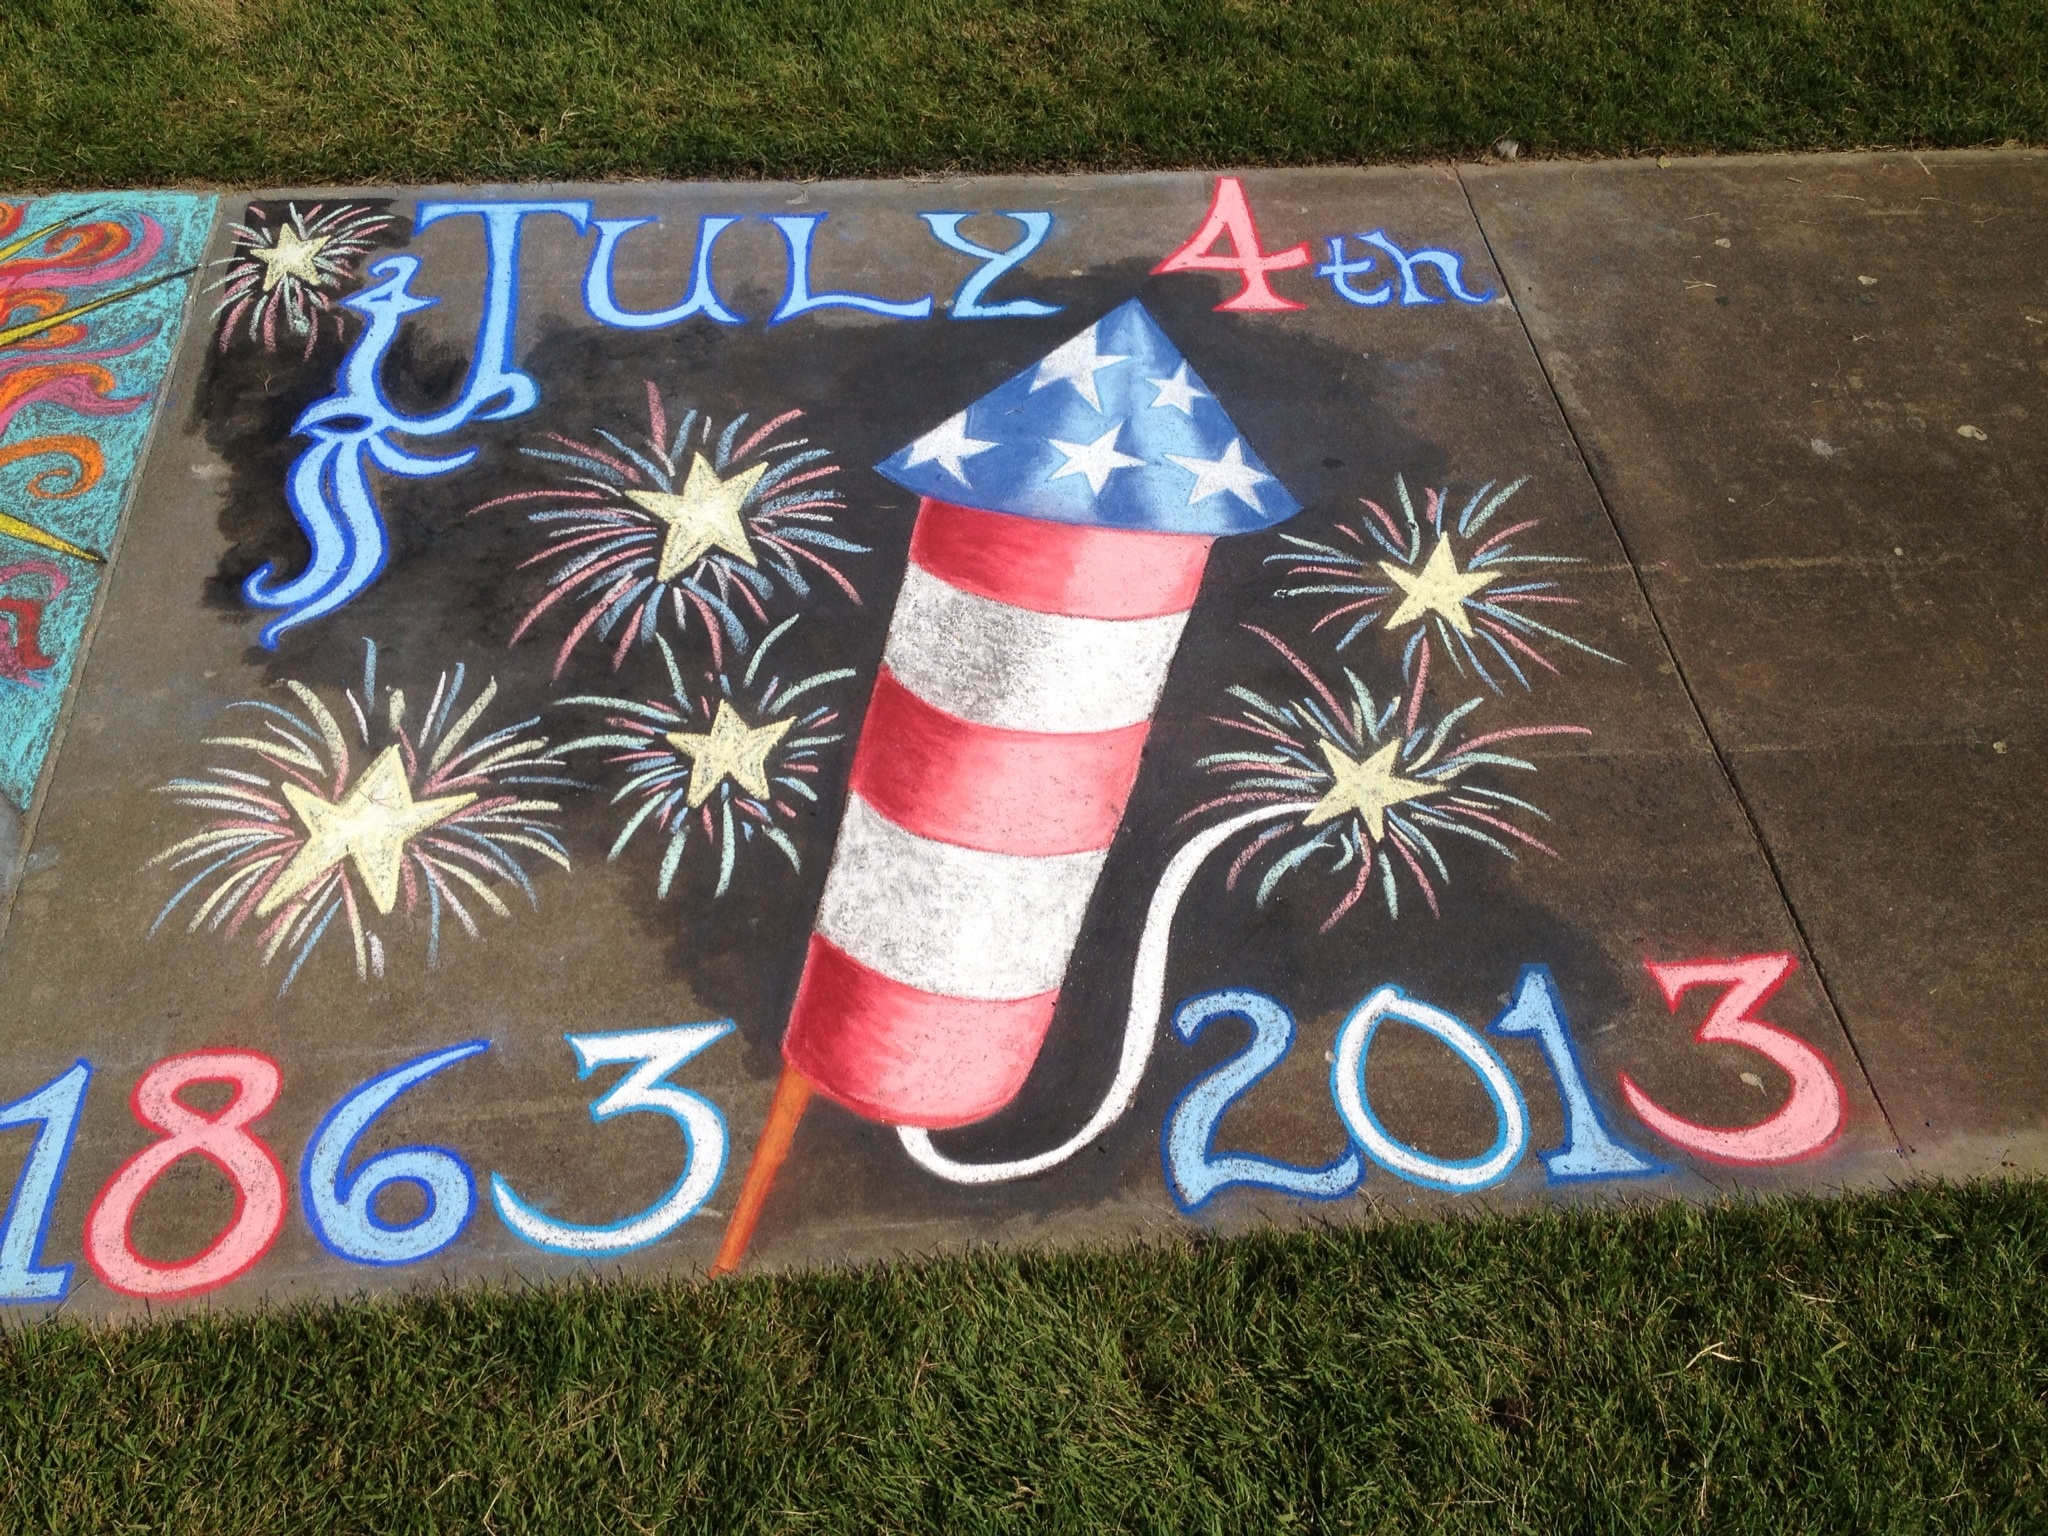 Featured Artist: Chalk Art for July 4, 2013